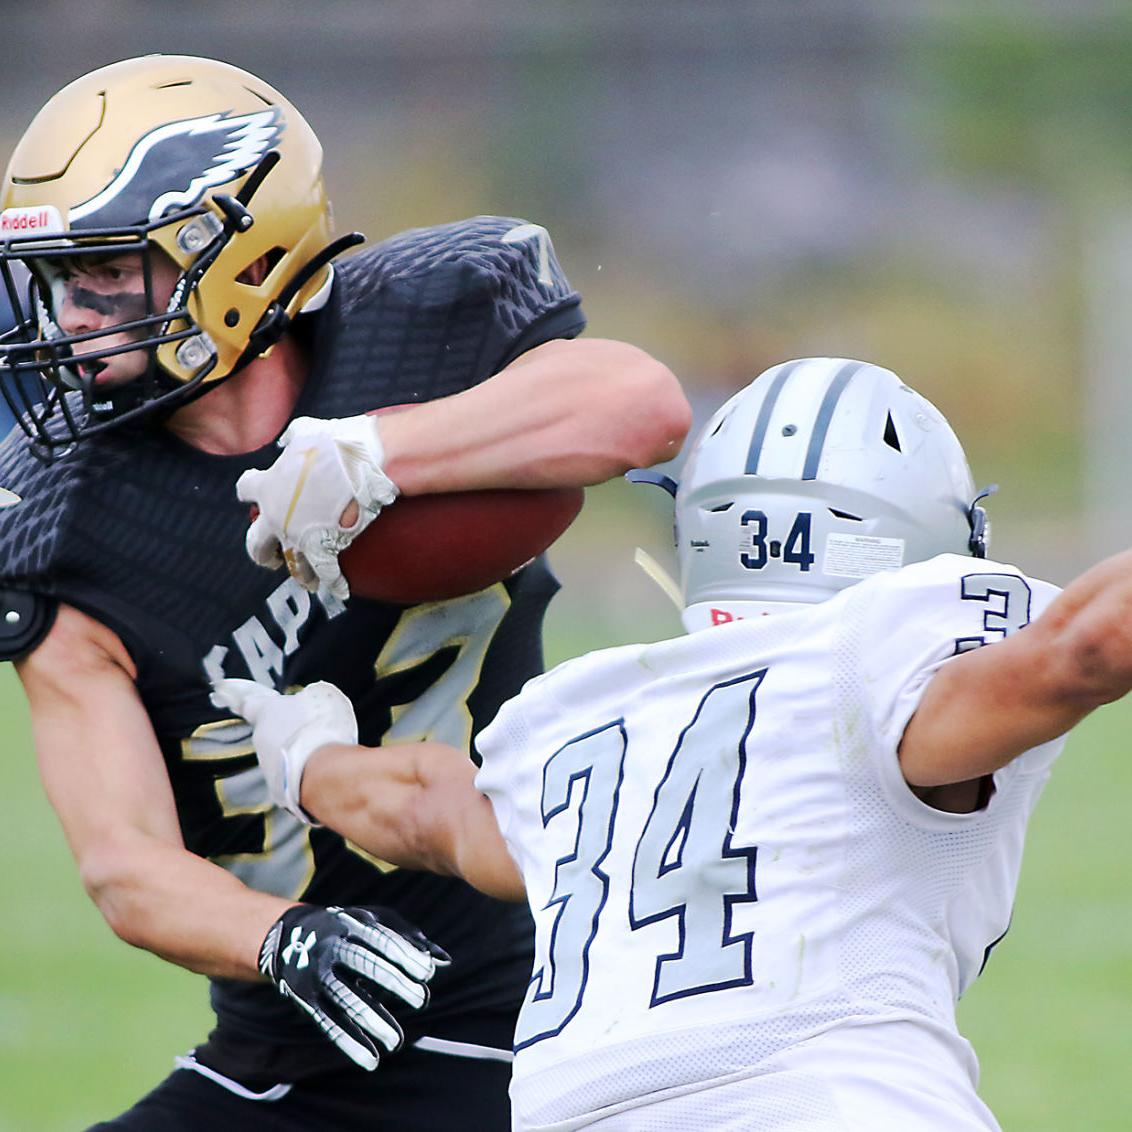 Worth the wait: Capital starts fast, rolls to 55-12 win over Skyview in unique season opener